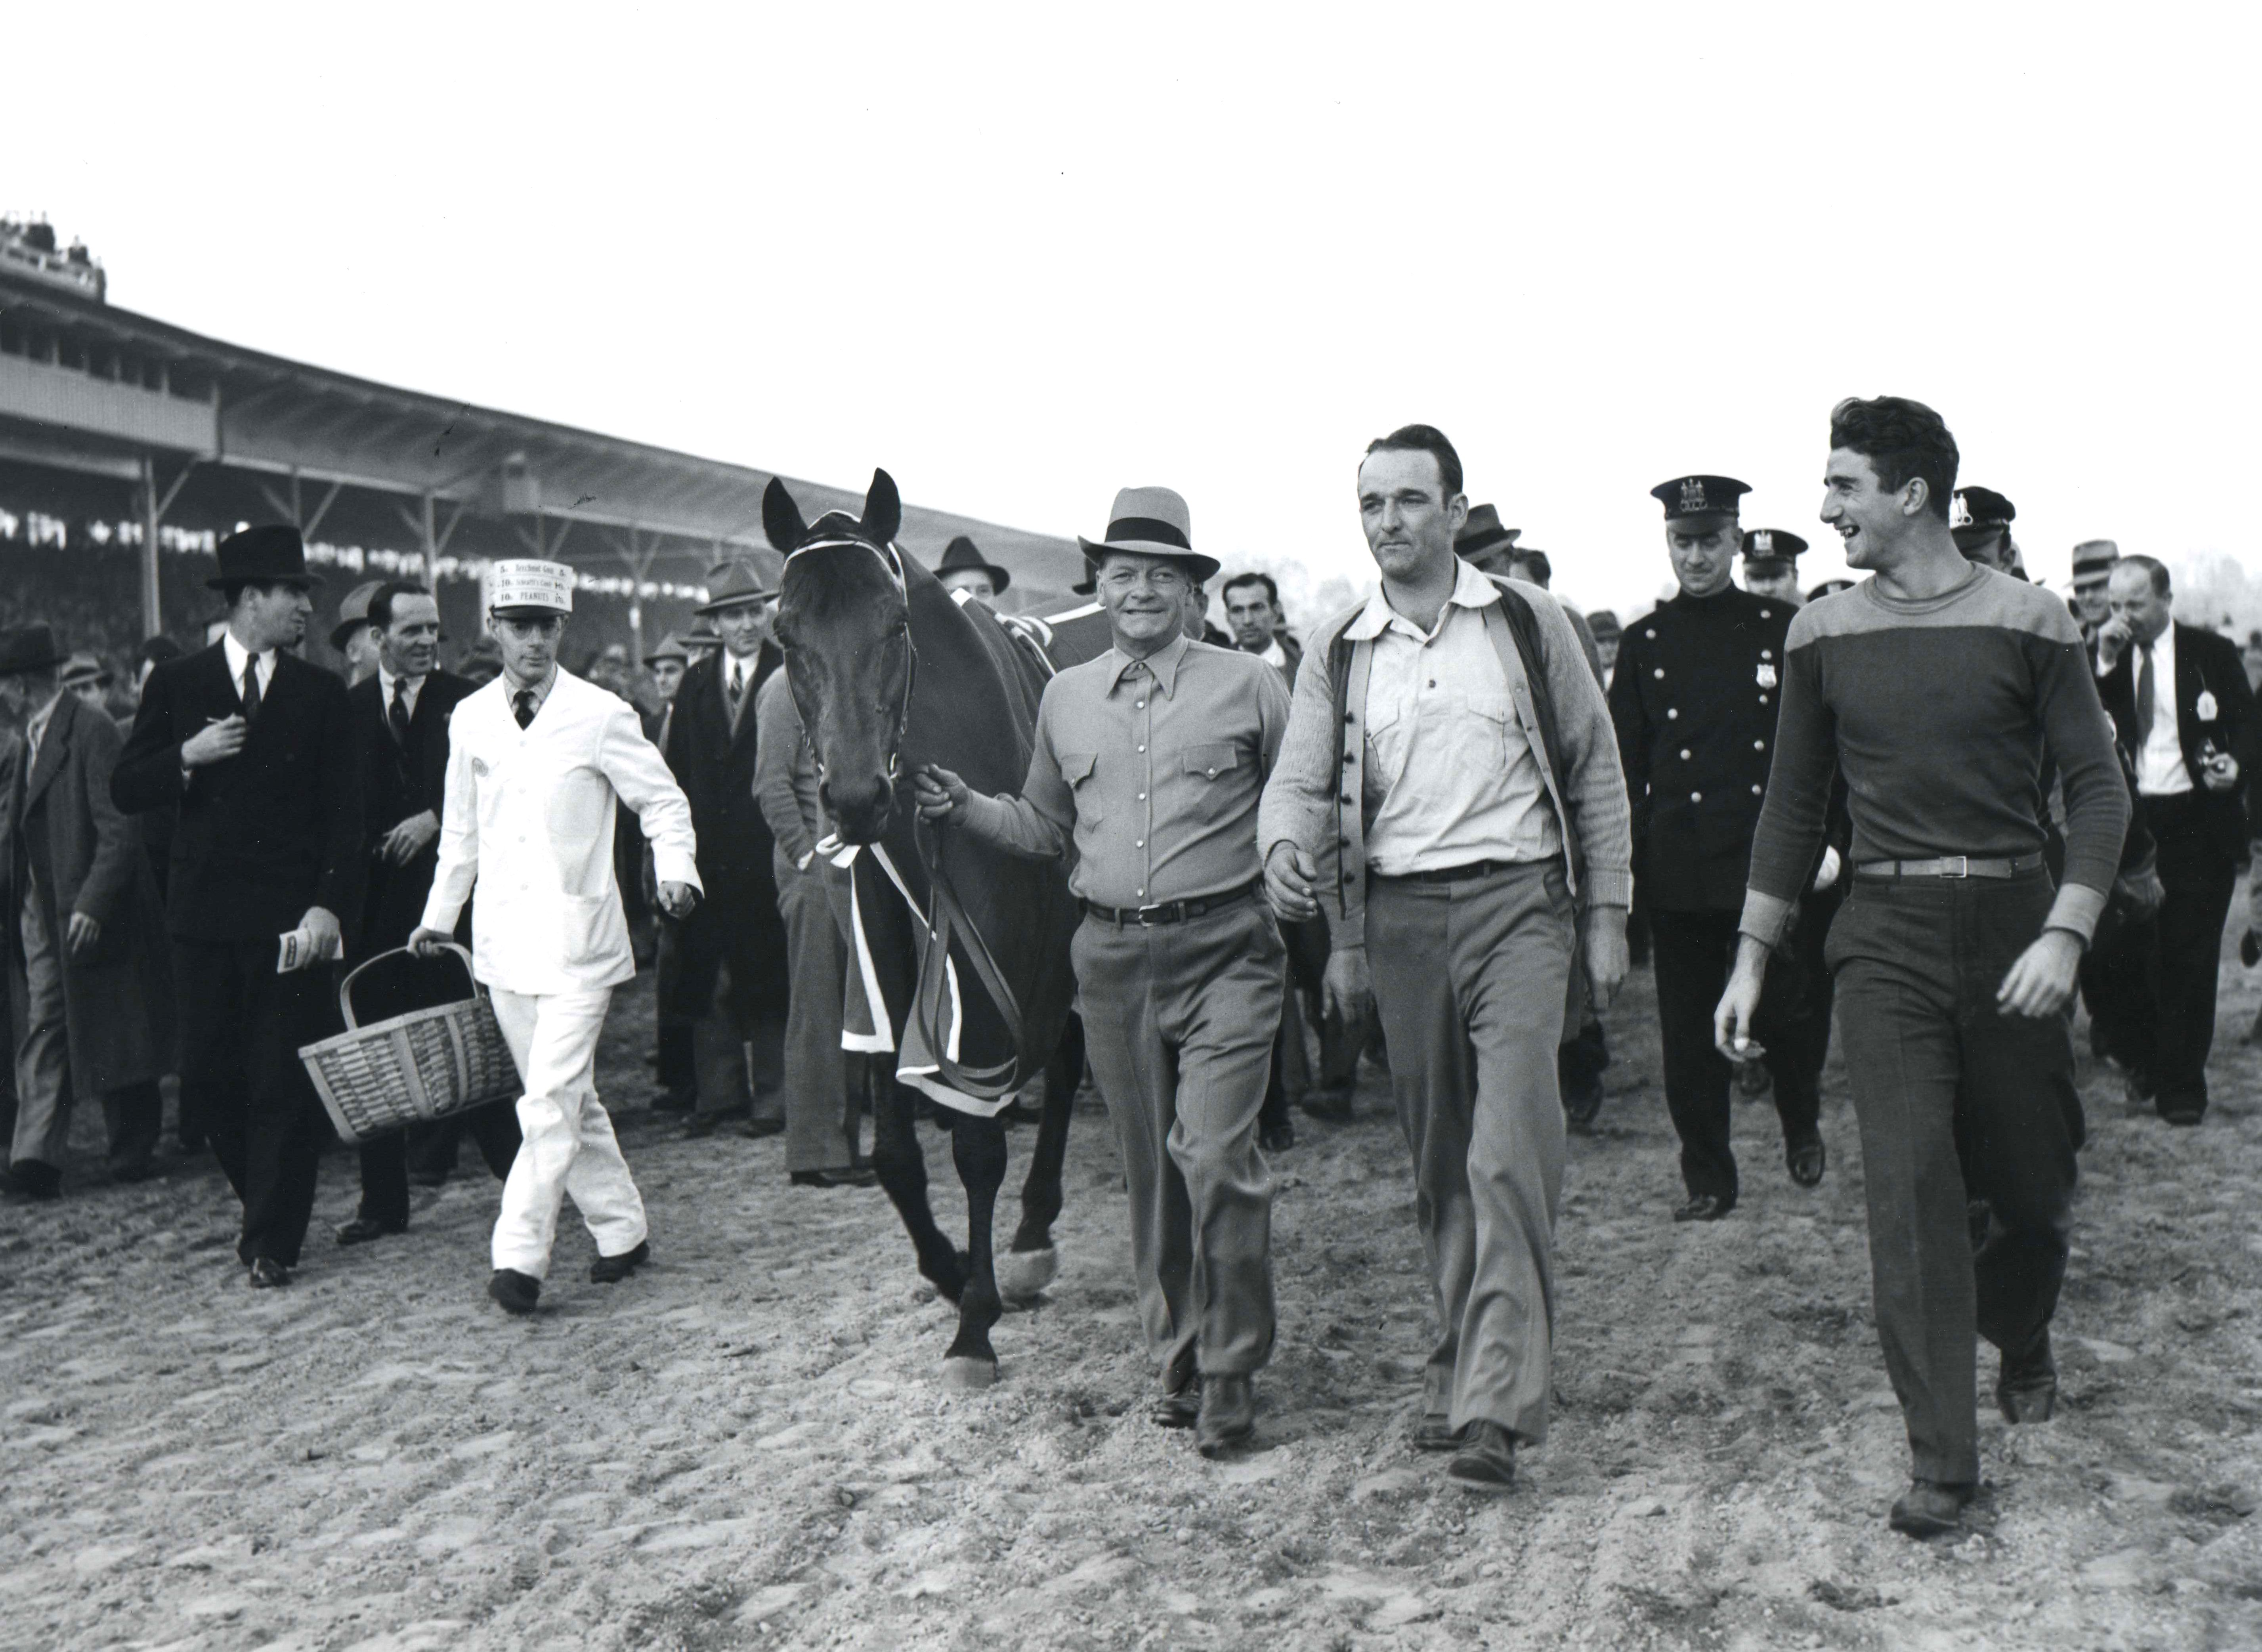 Seabiscuit (Keeneland Library Morgan Collection)